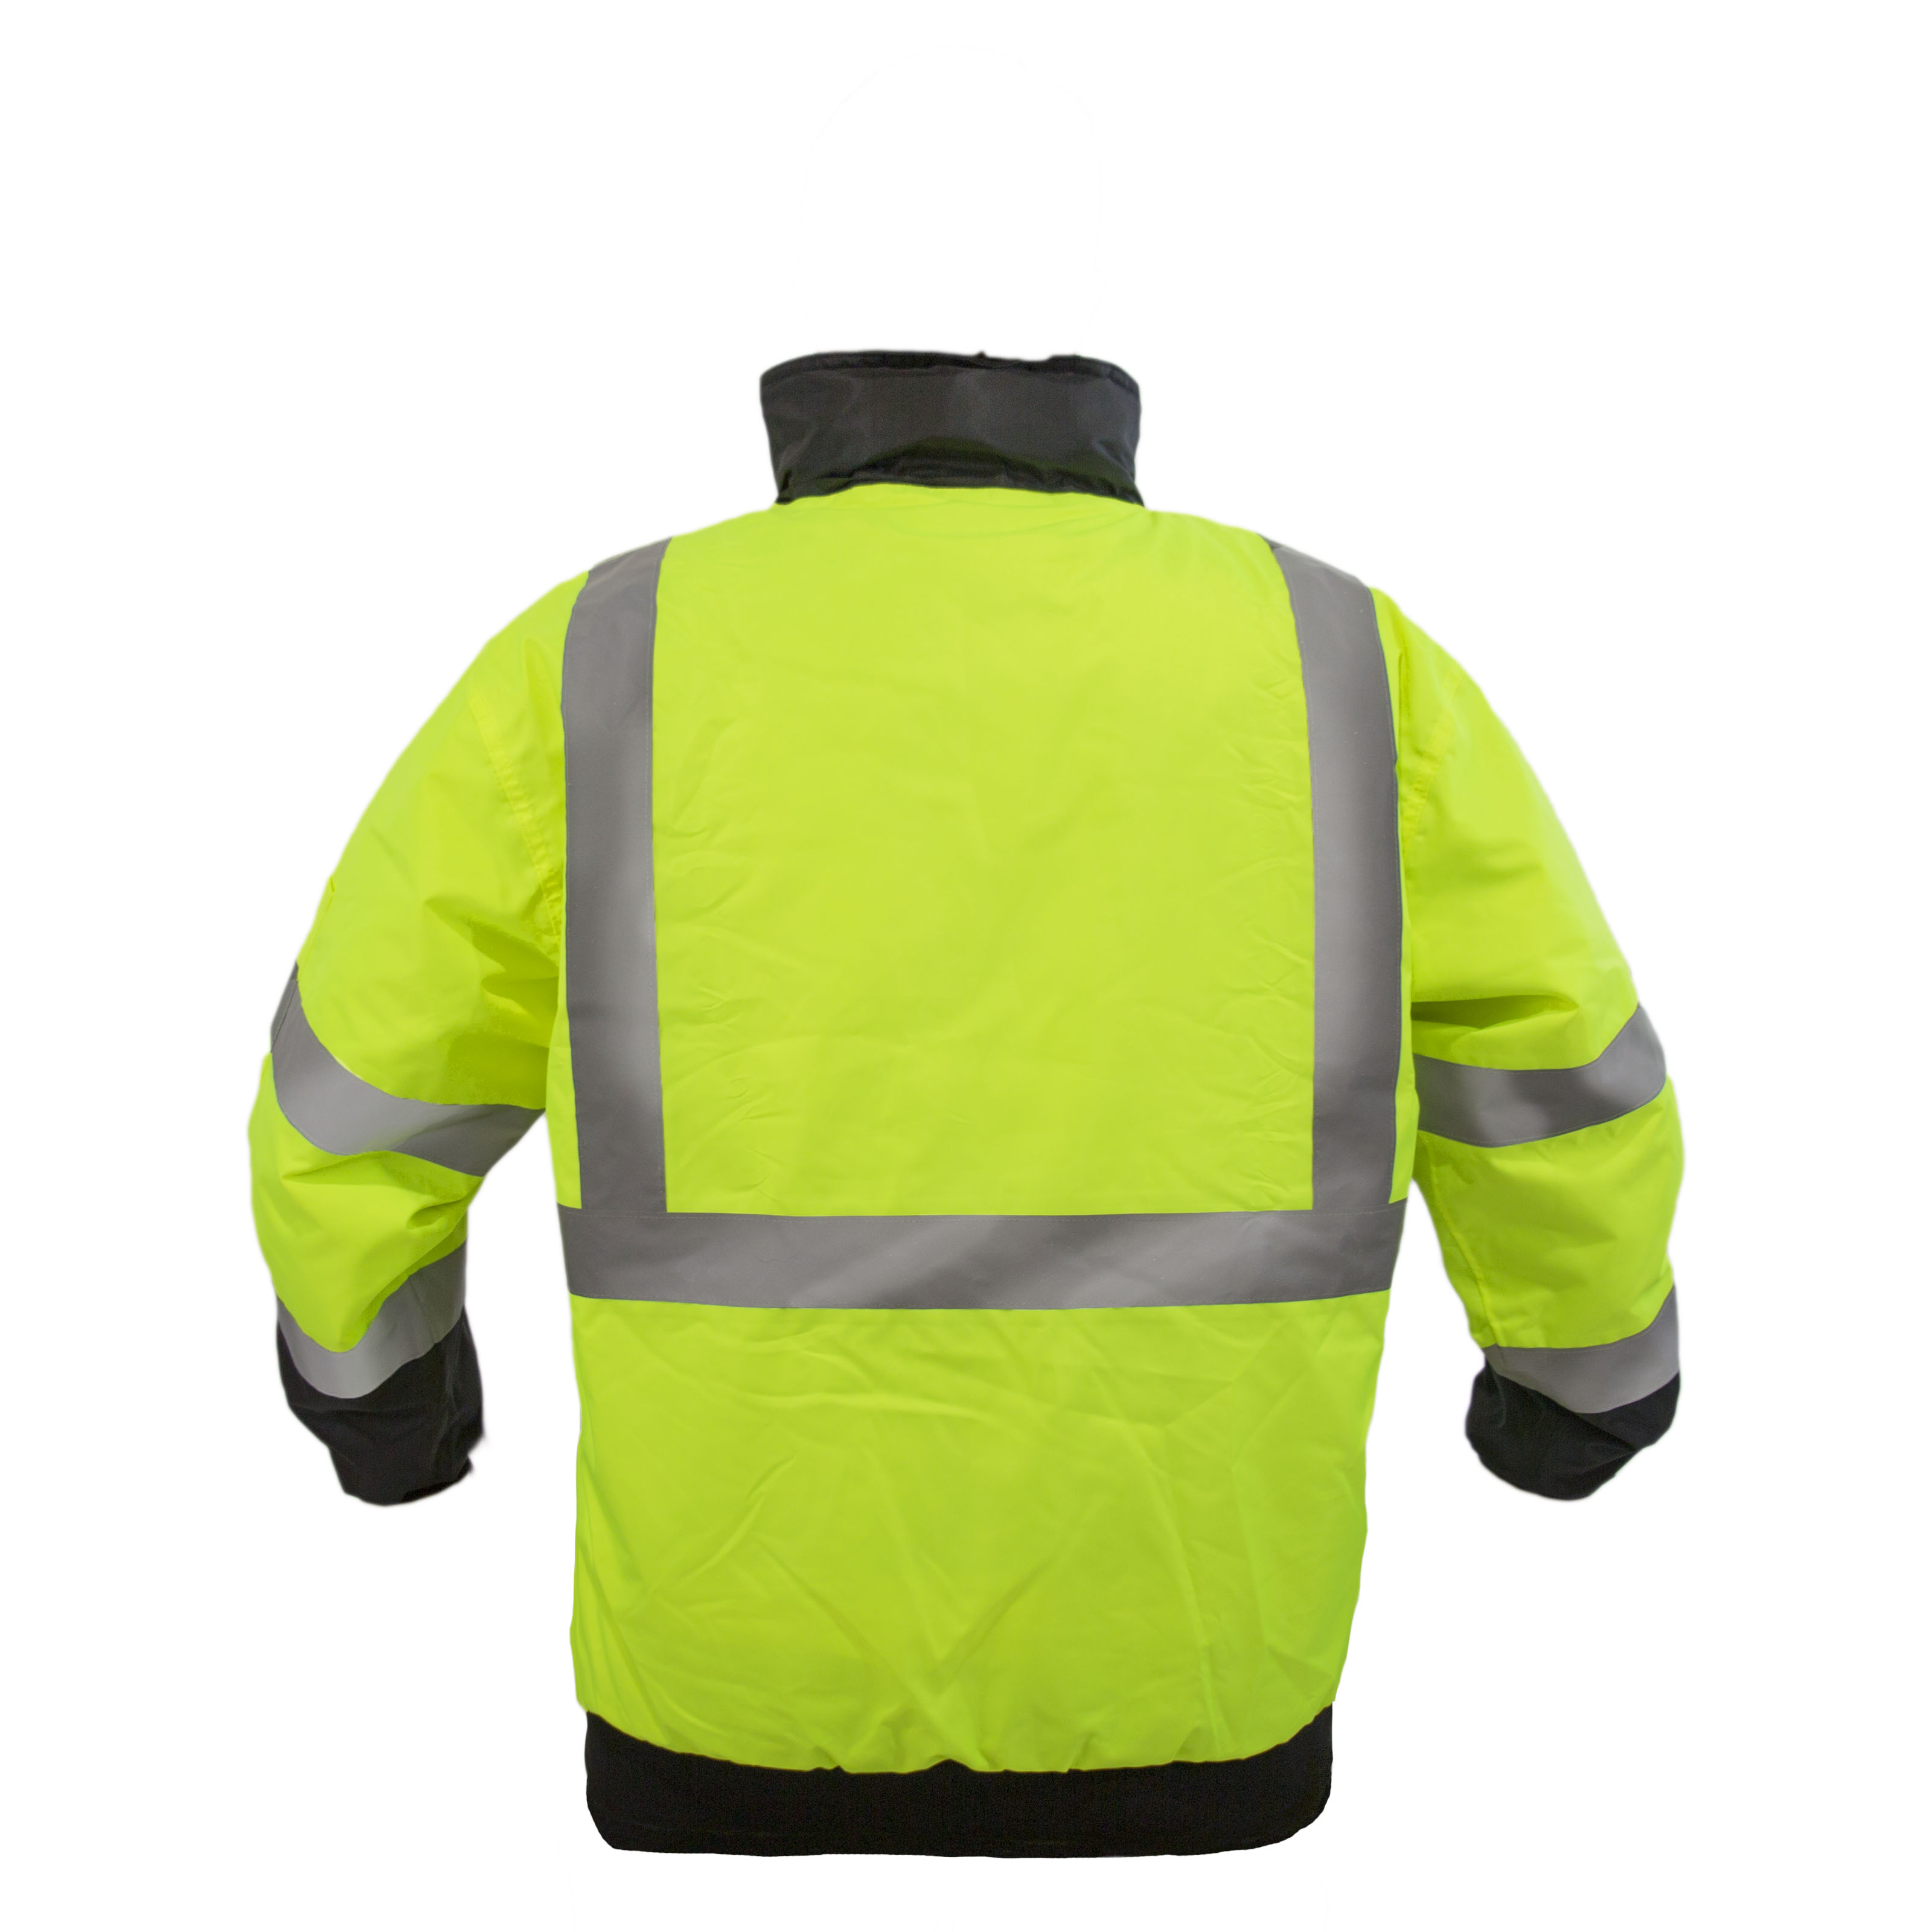 Waterproof 2X-Large, Yellow/&black VZC-J1-2XL Mens ANSI Class 3 High Visibility Bomber Safety Jacket